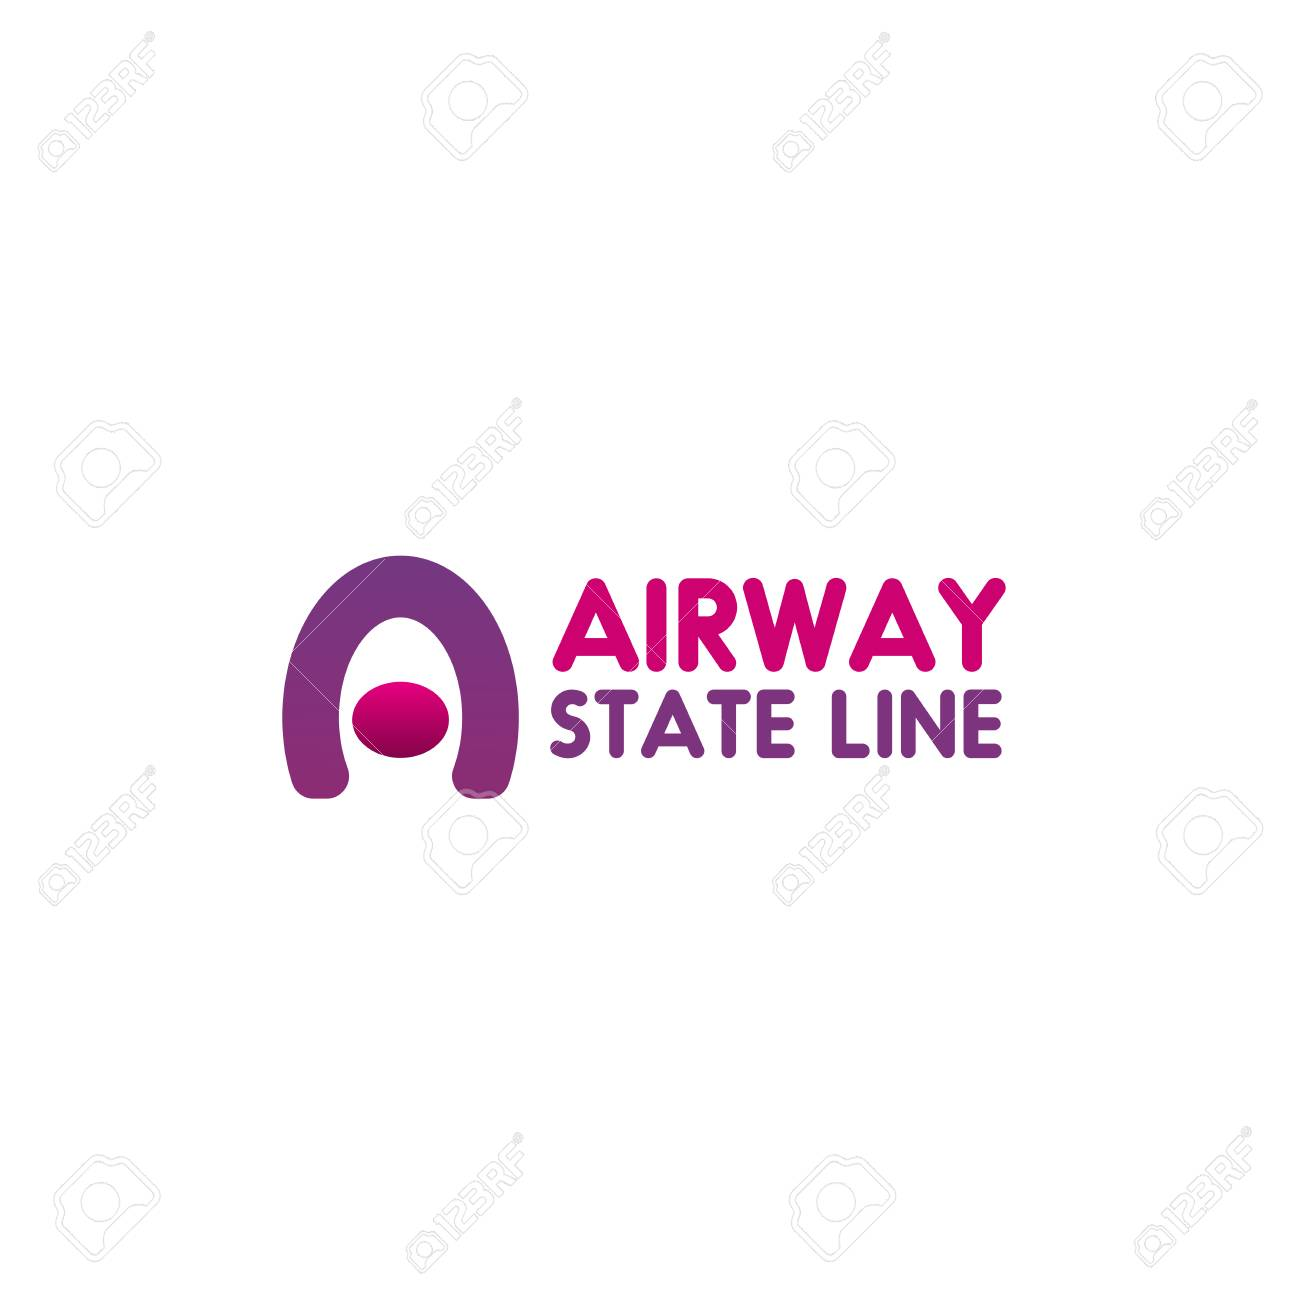 Airway State Line Vector Icon In Pink And Magenta Colors Isolated 1300x1297